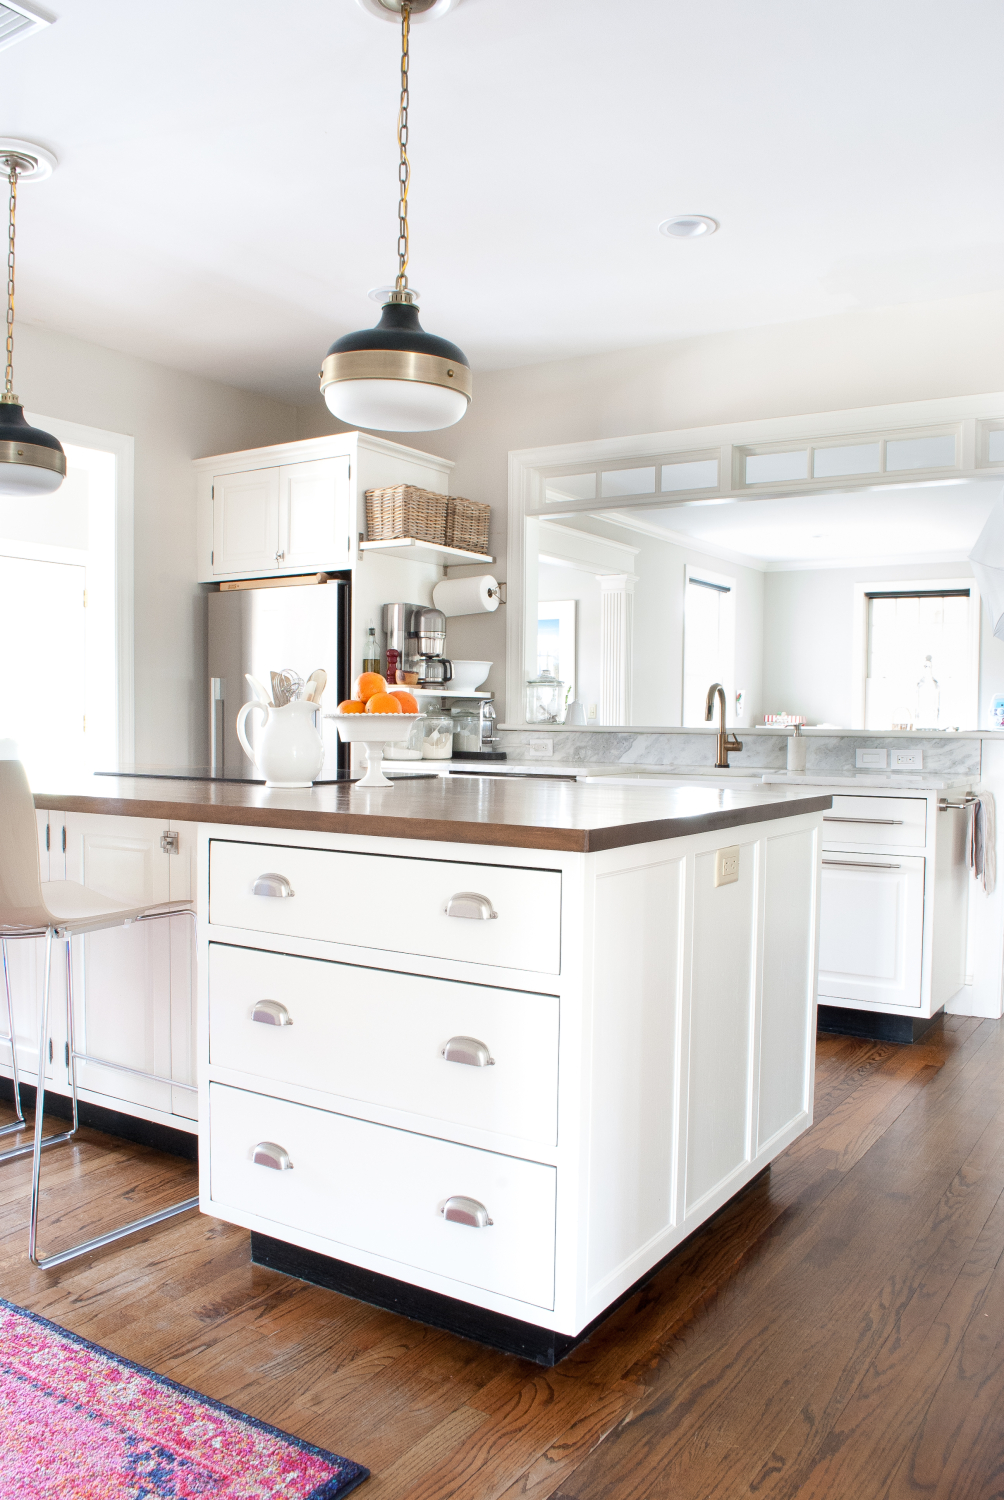 How to Add Detail to a Plain Kitchen Island - The Chronicles of Home